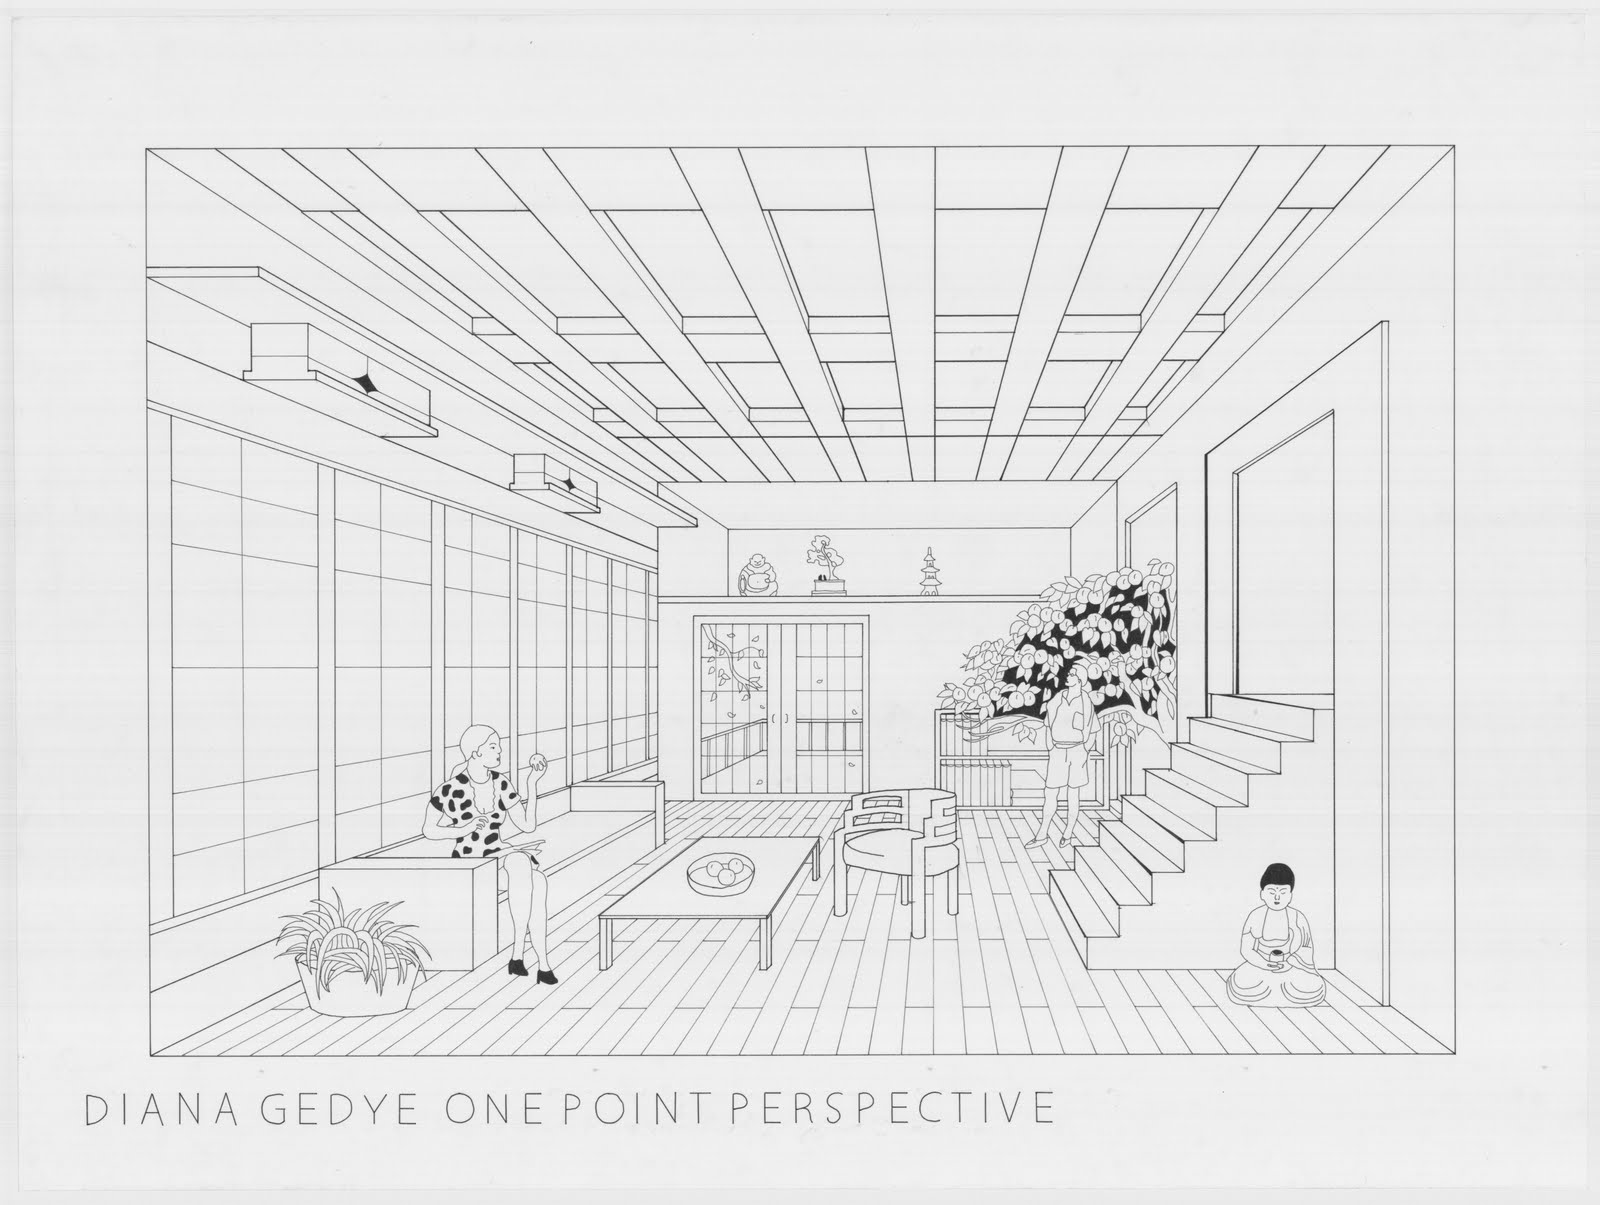 One point perspective living room drawing - One Point Perspective Room By Pockyshark On Deviantart E P Perspective Pinterest Perspective One Point Perspective And Deviantart